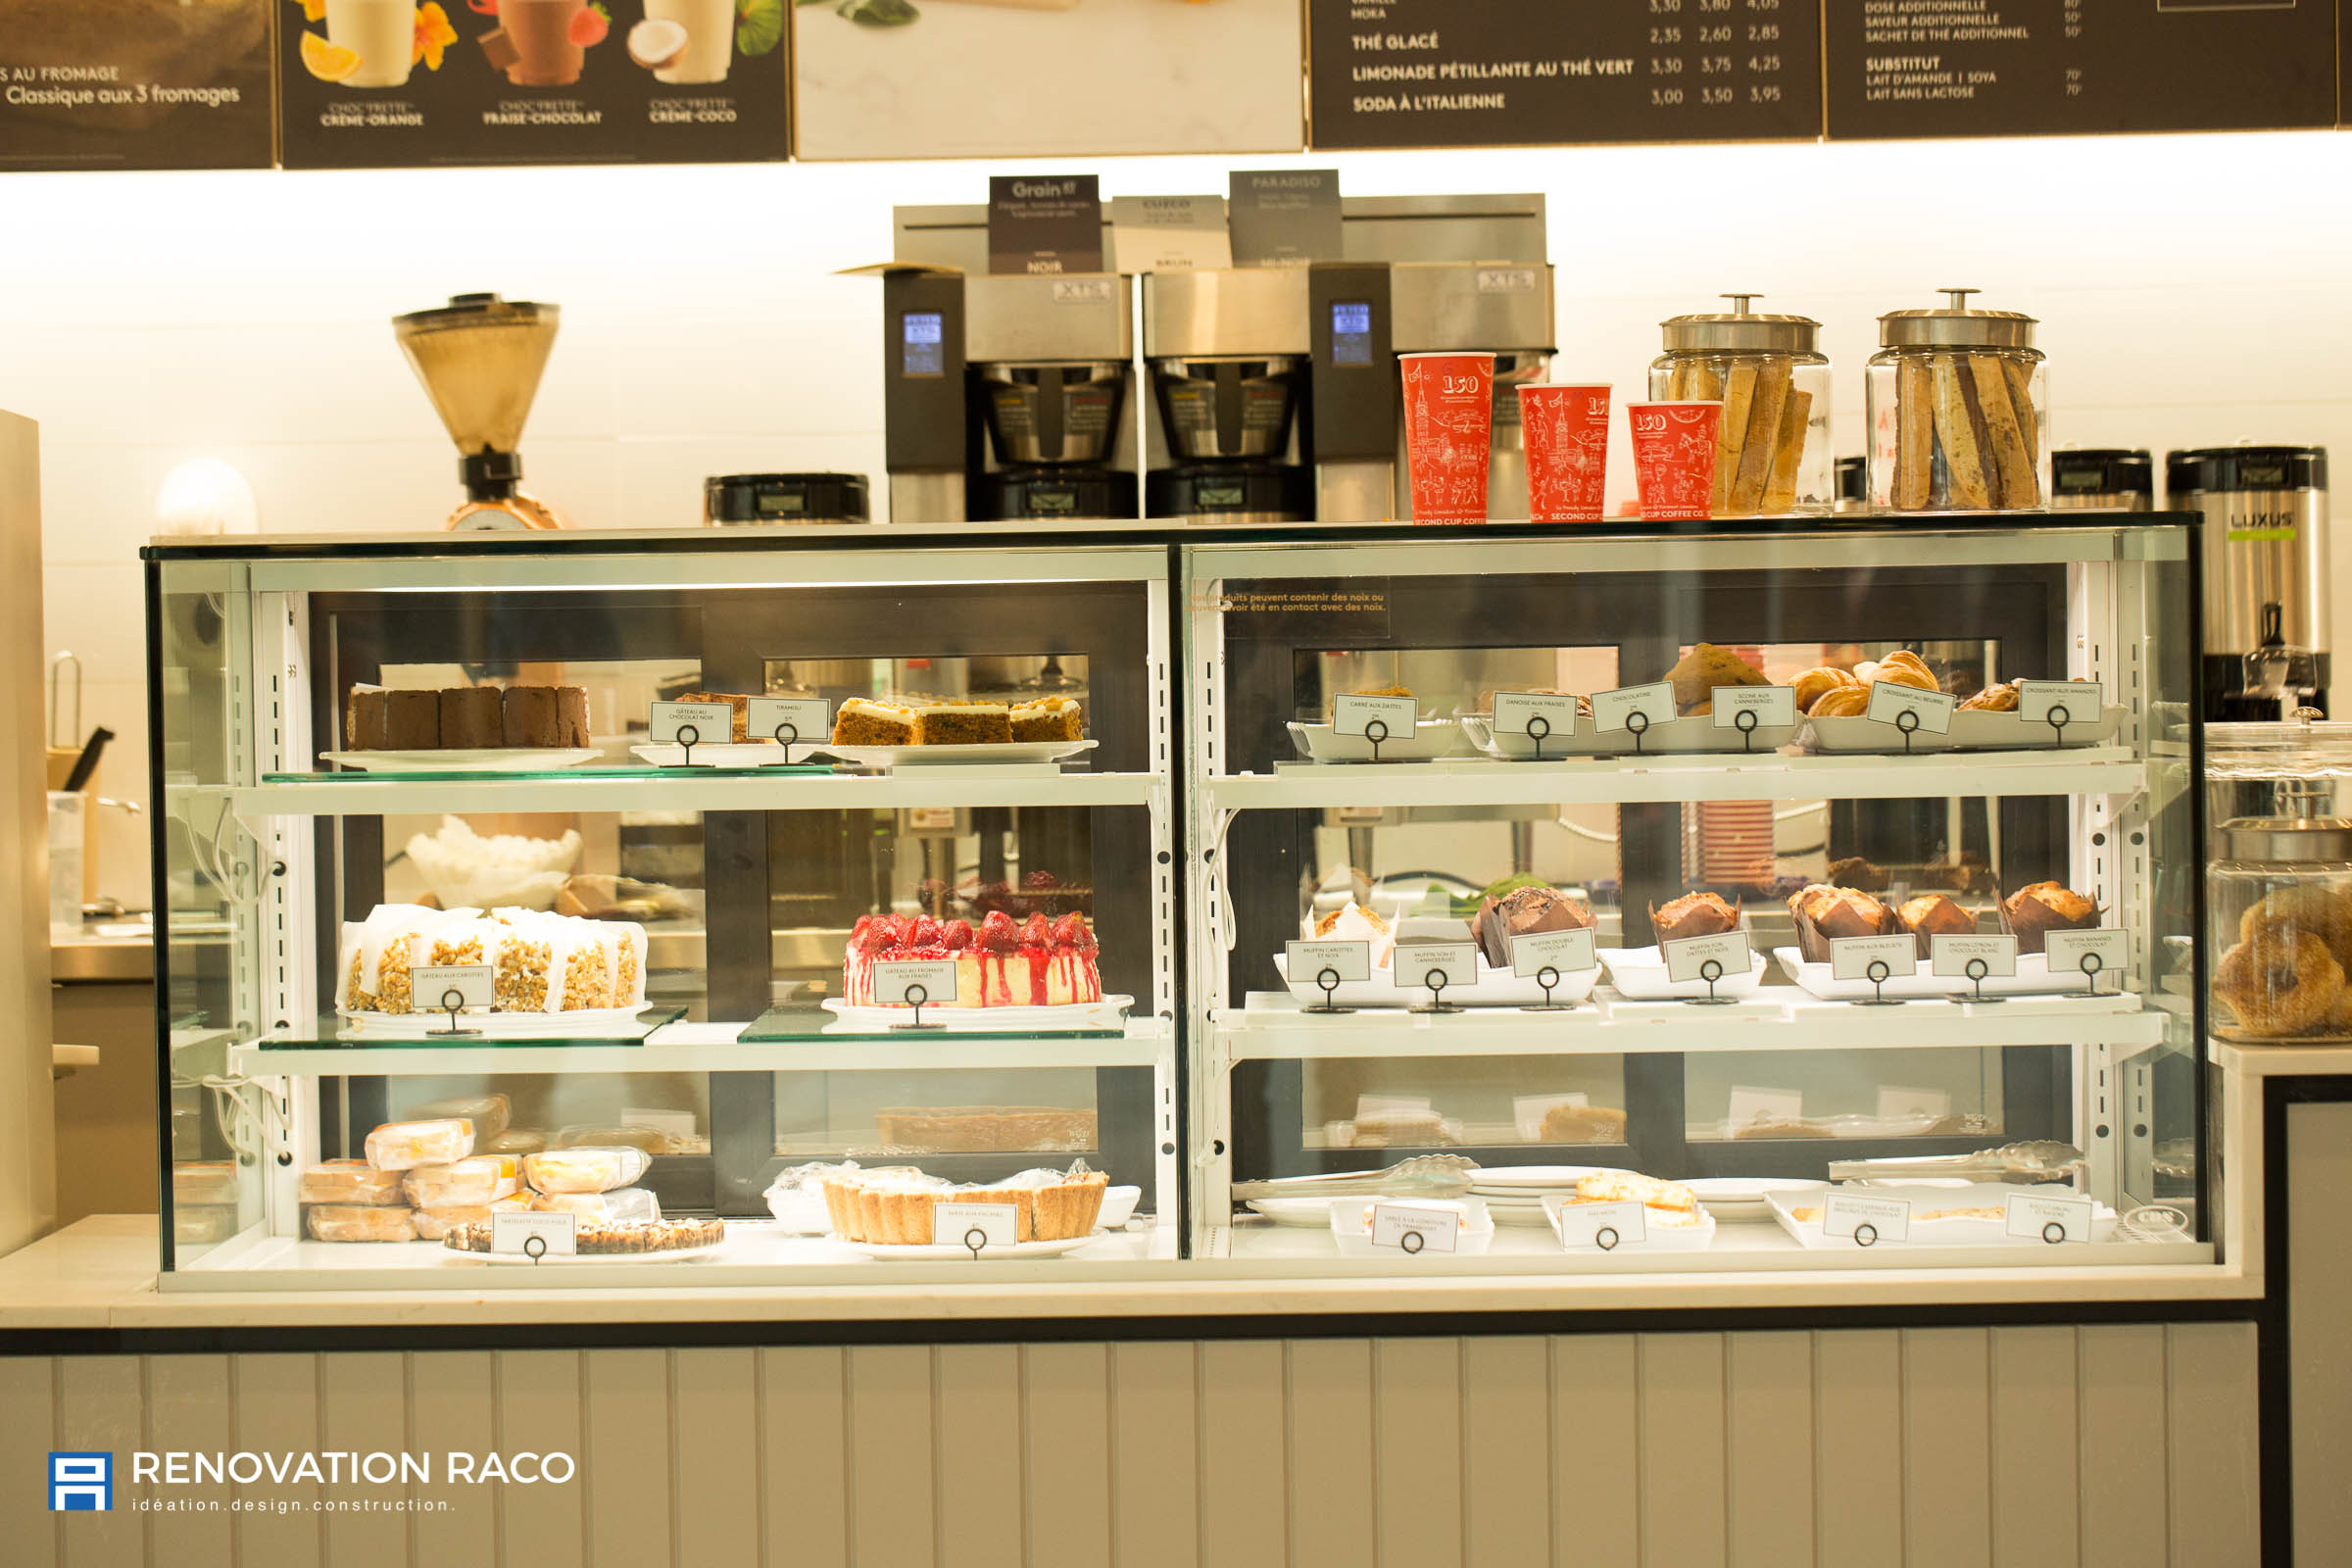 Renovation-Raco-Montreal-Second Cup-06.jpg